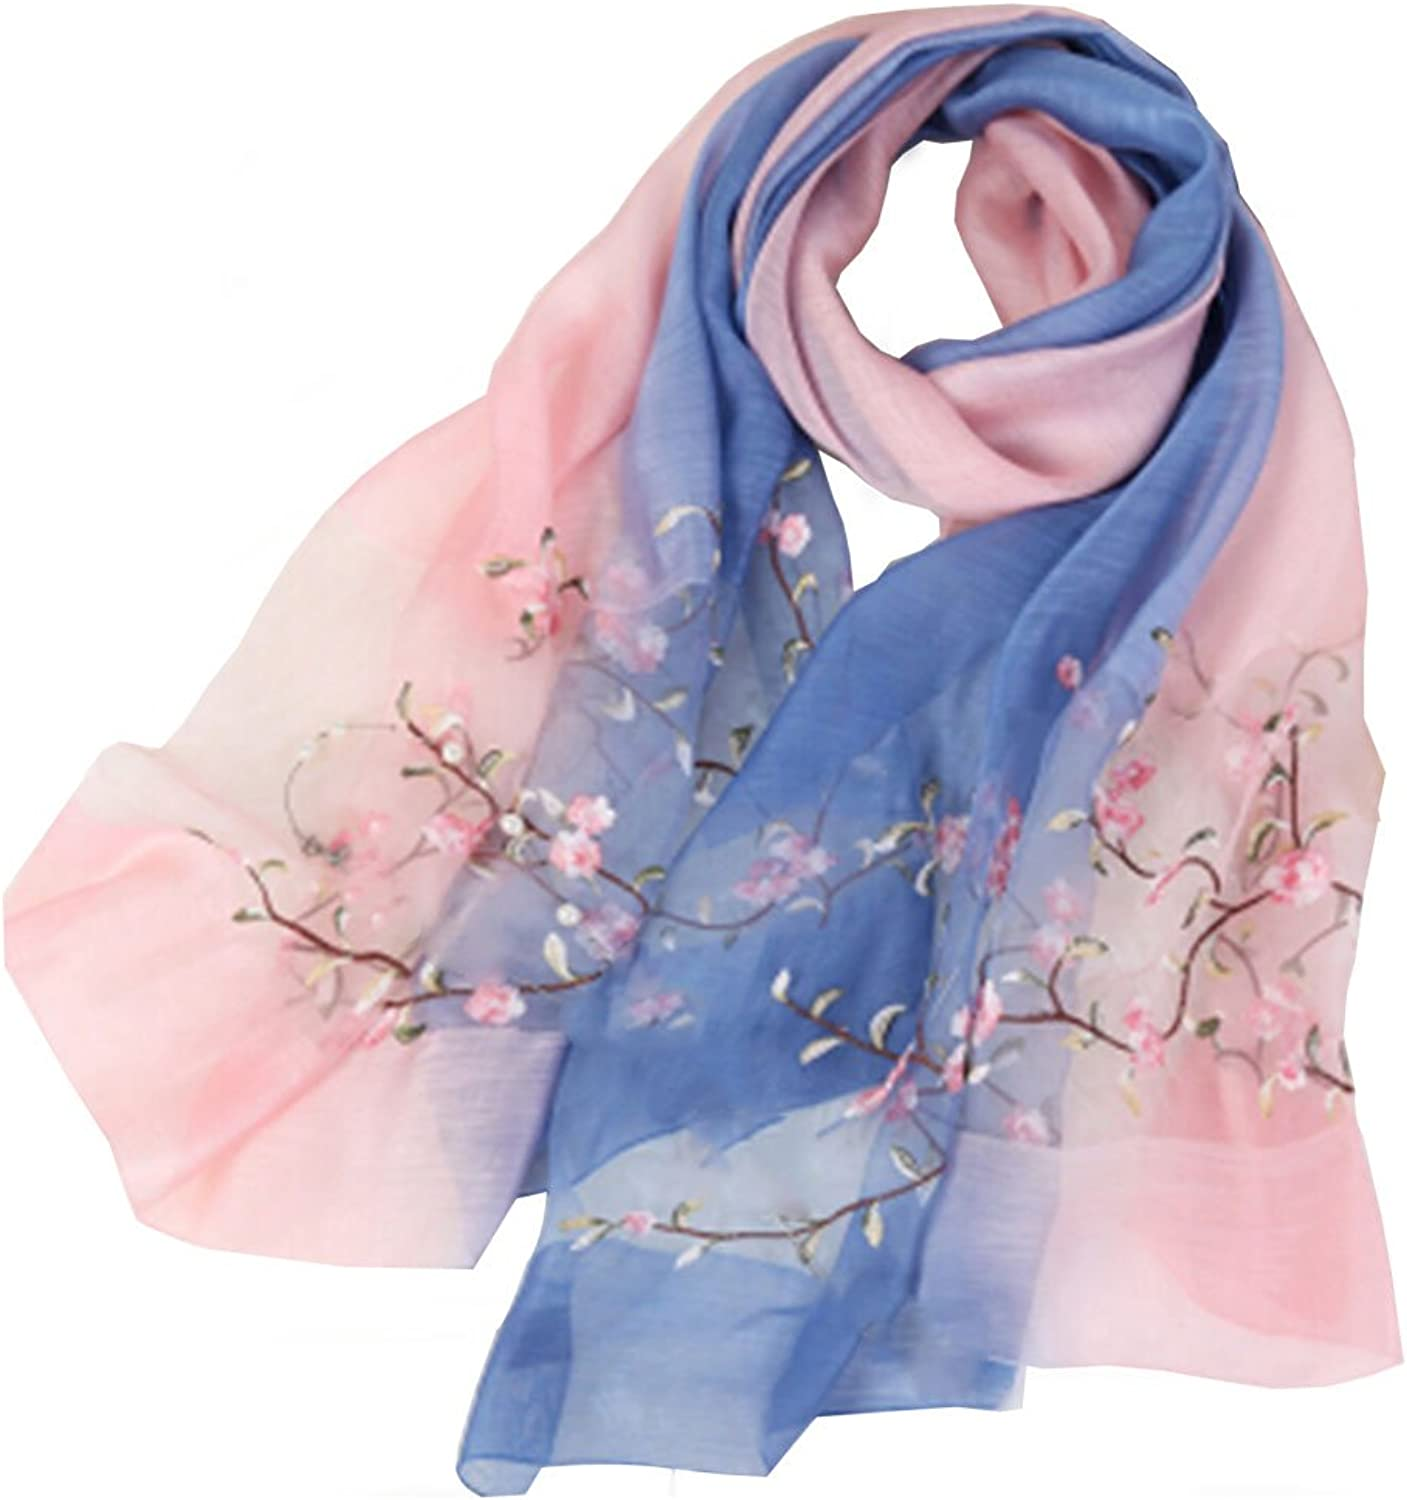 Blended silk scarf female spring and autumn thin scarf female mulberry silk embroidery shawl sunscreen scarf peach blossoming powder bluee gradient